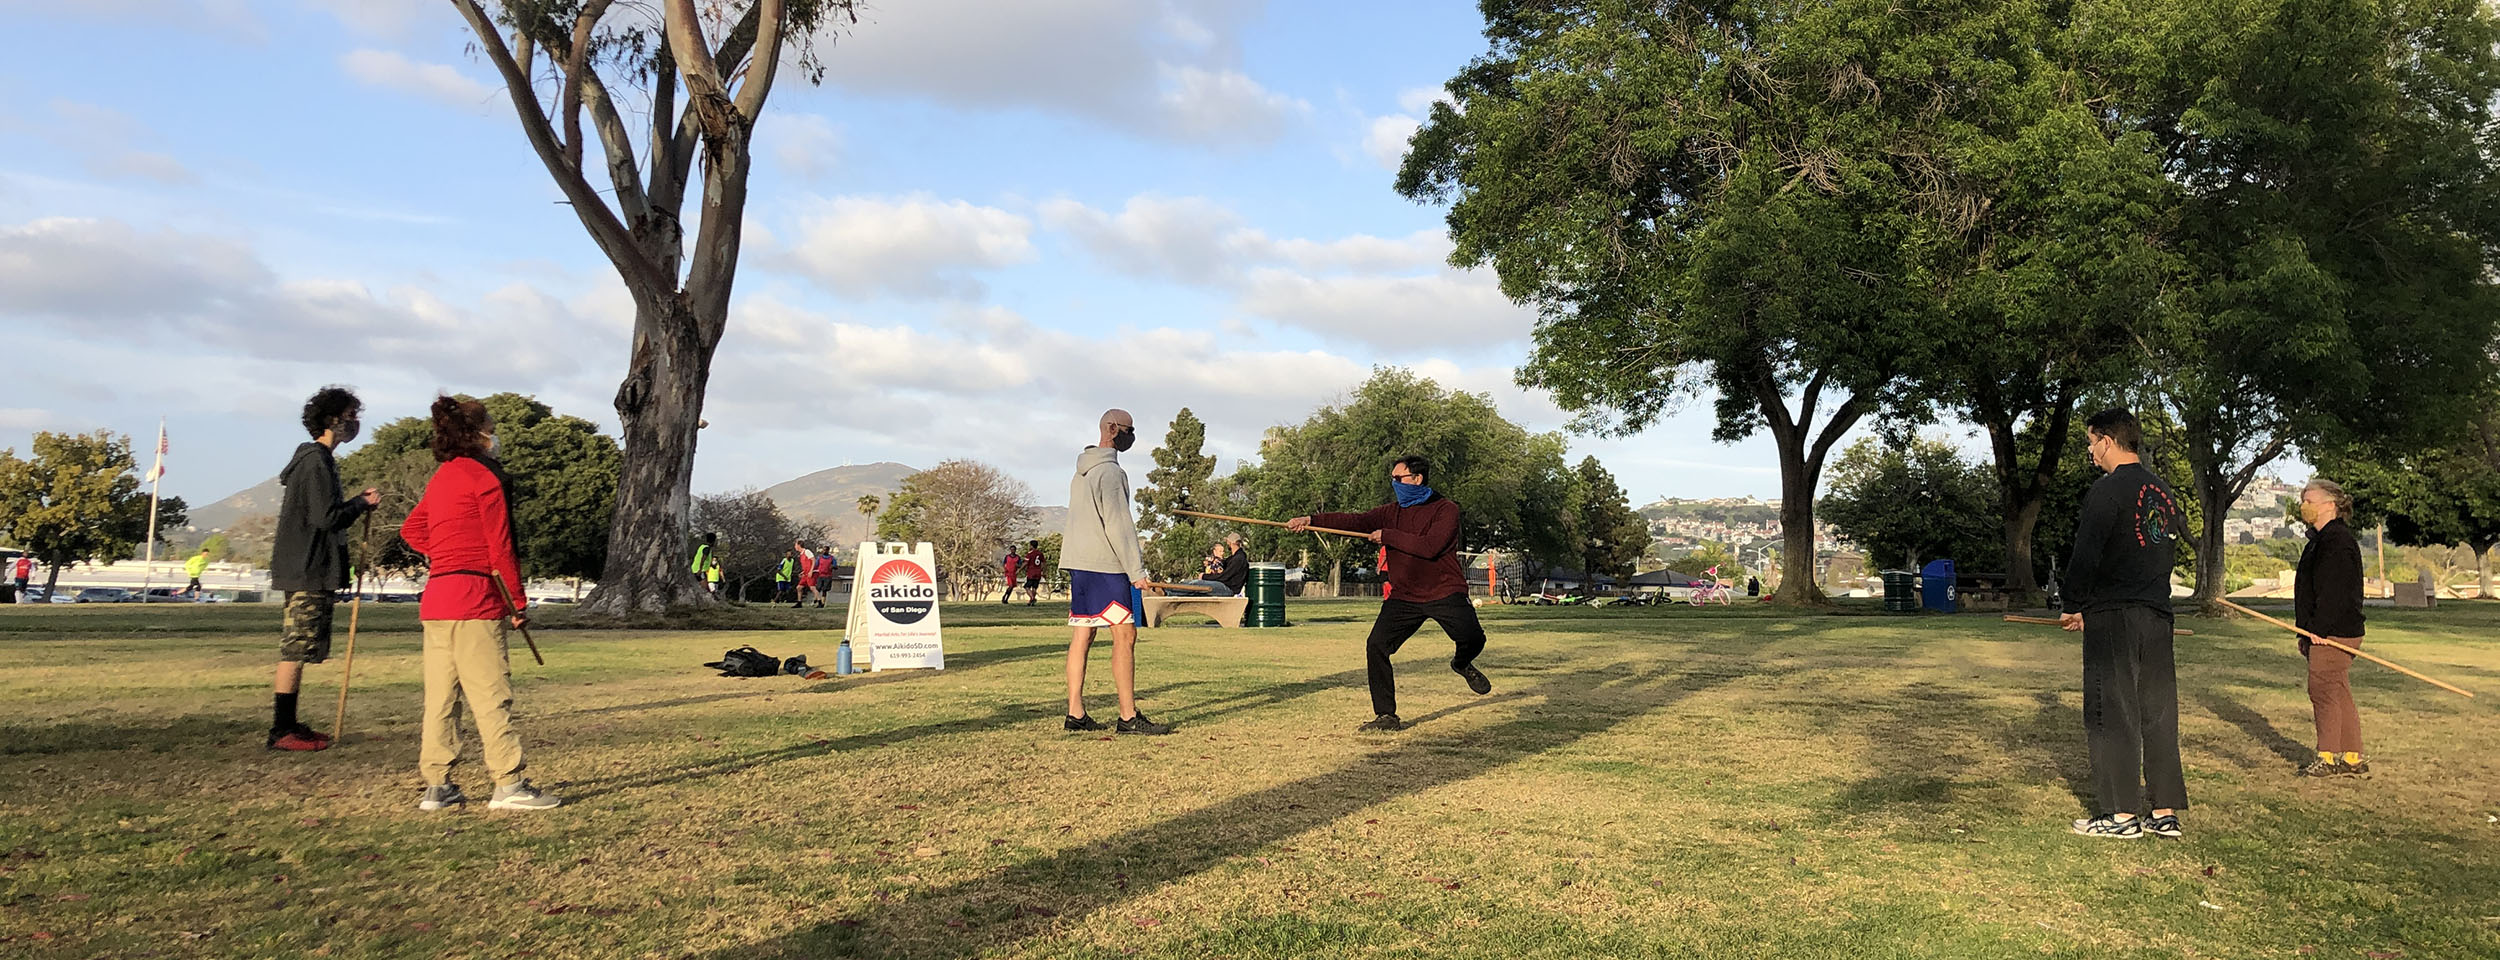 Aikido of San Diego, training in the park during the Covid pandemic